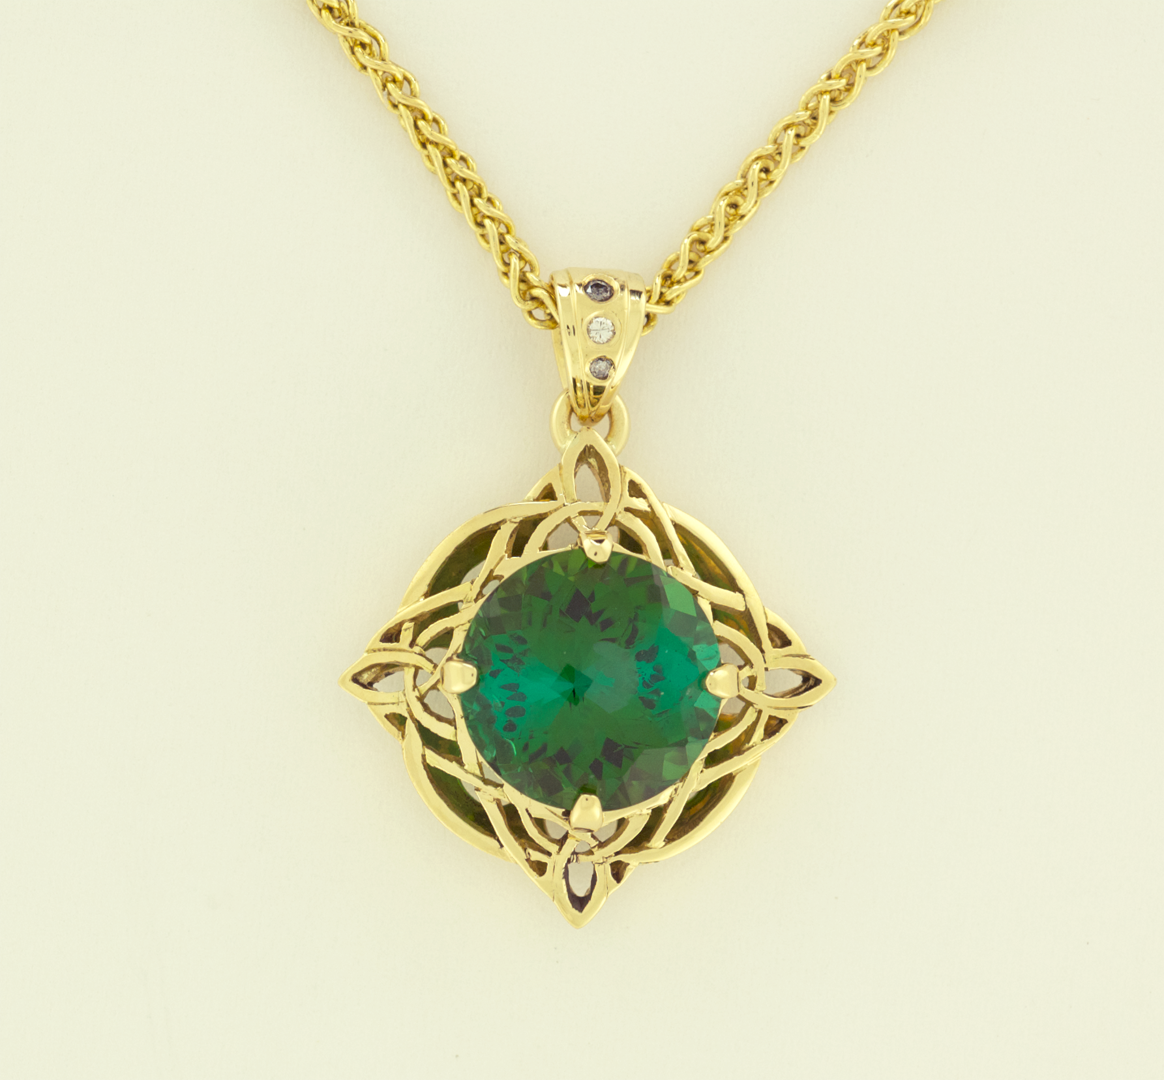 Green tourmaline 582cts celtic pendant necklaces artistic click here for purchase or inquiry aloadofball Images